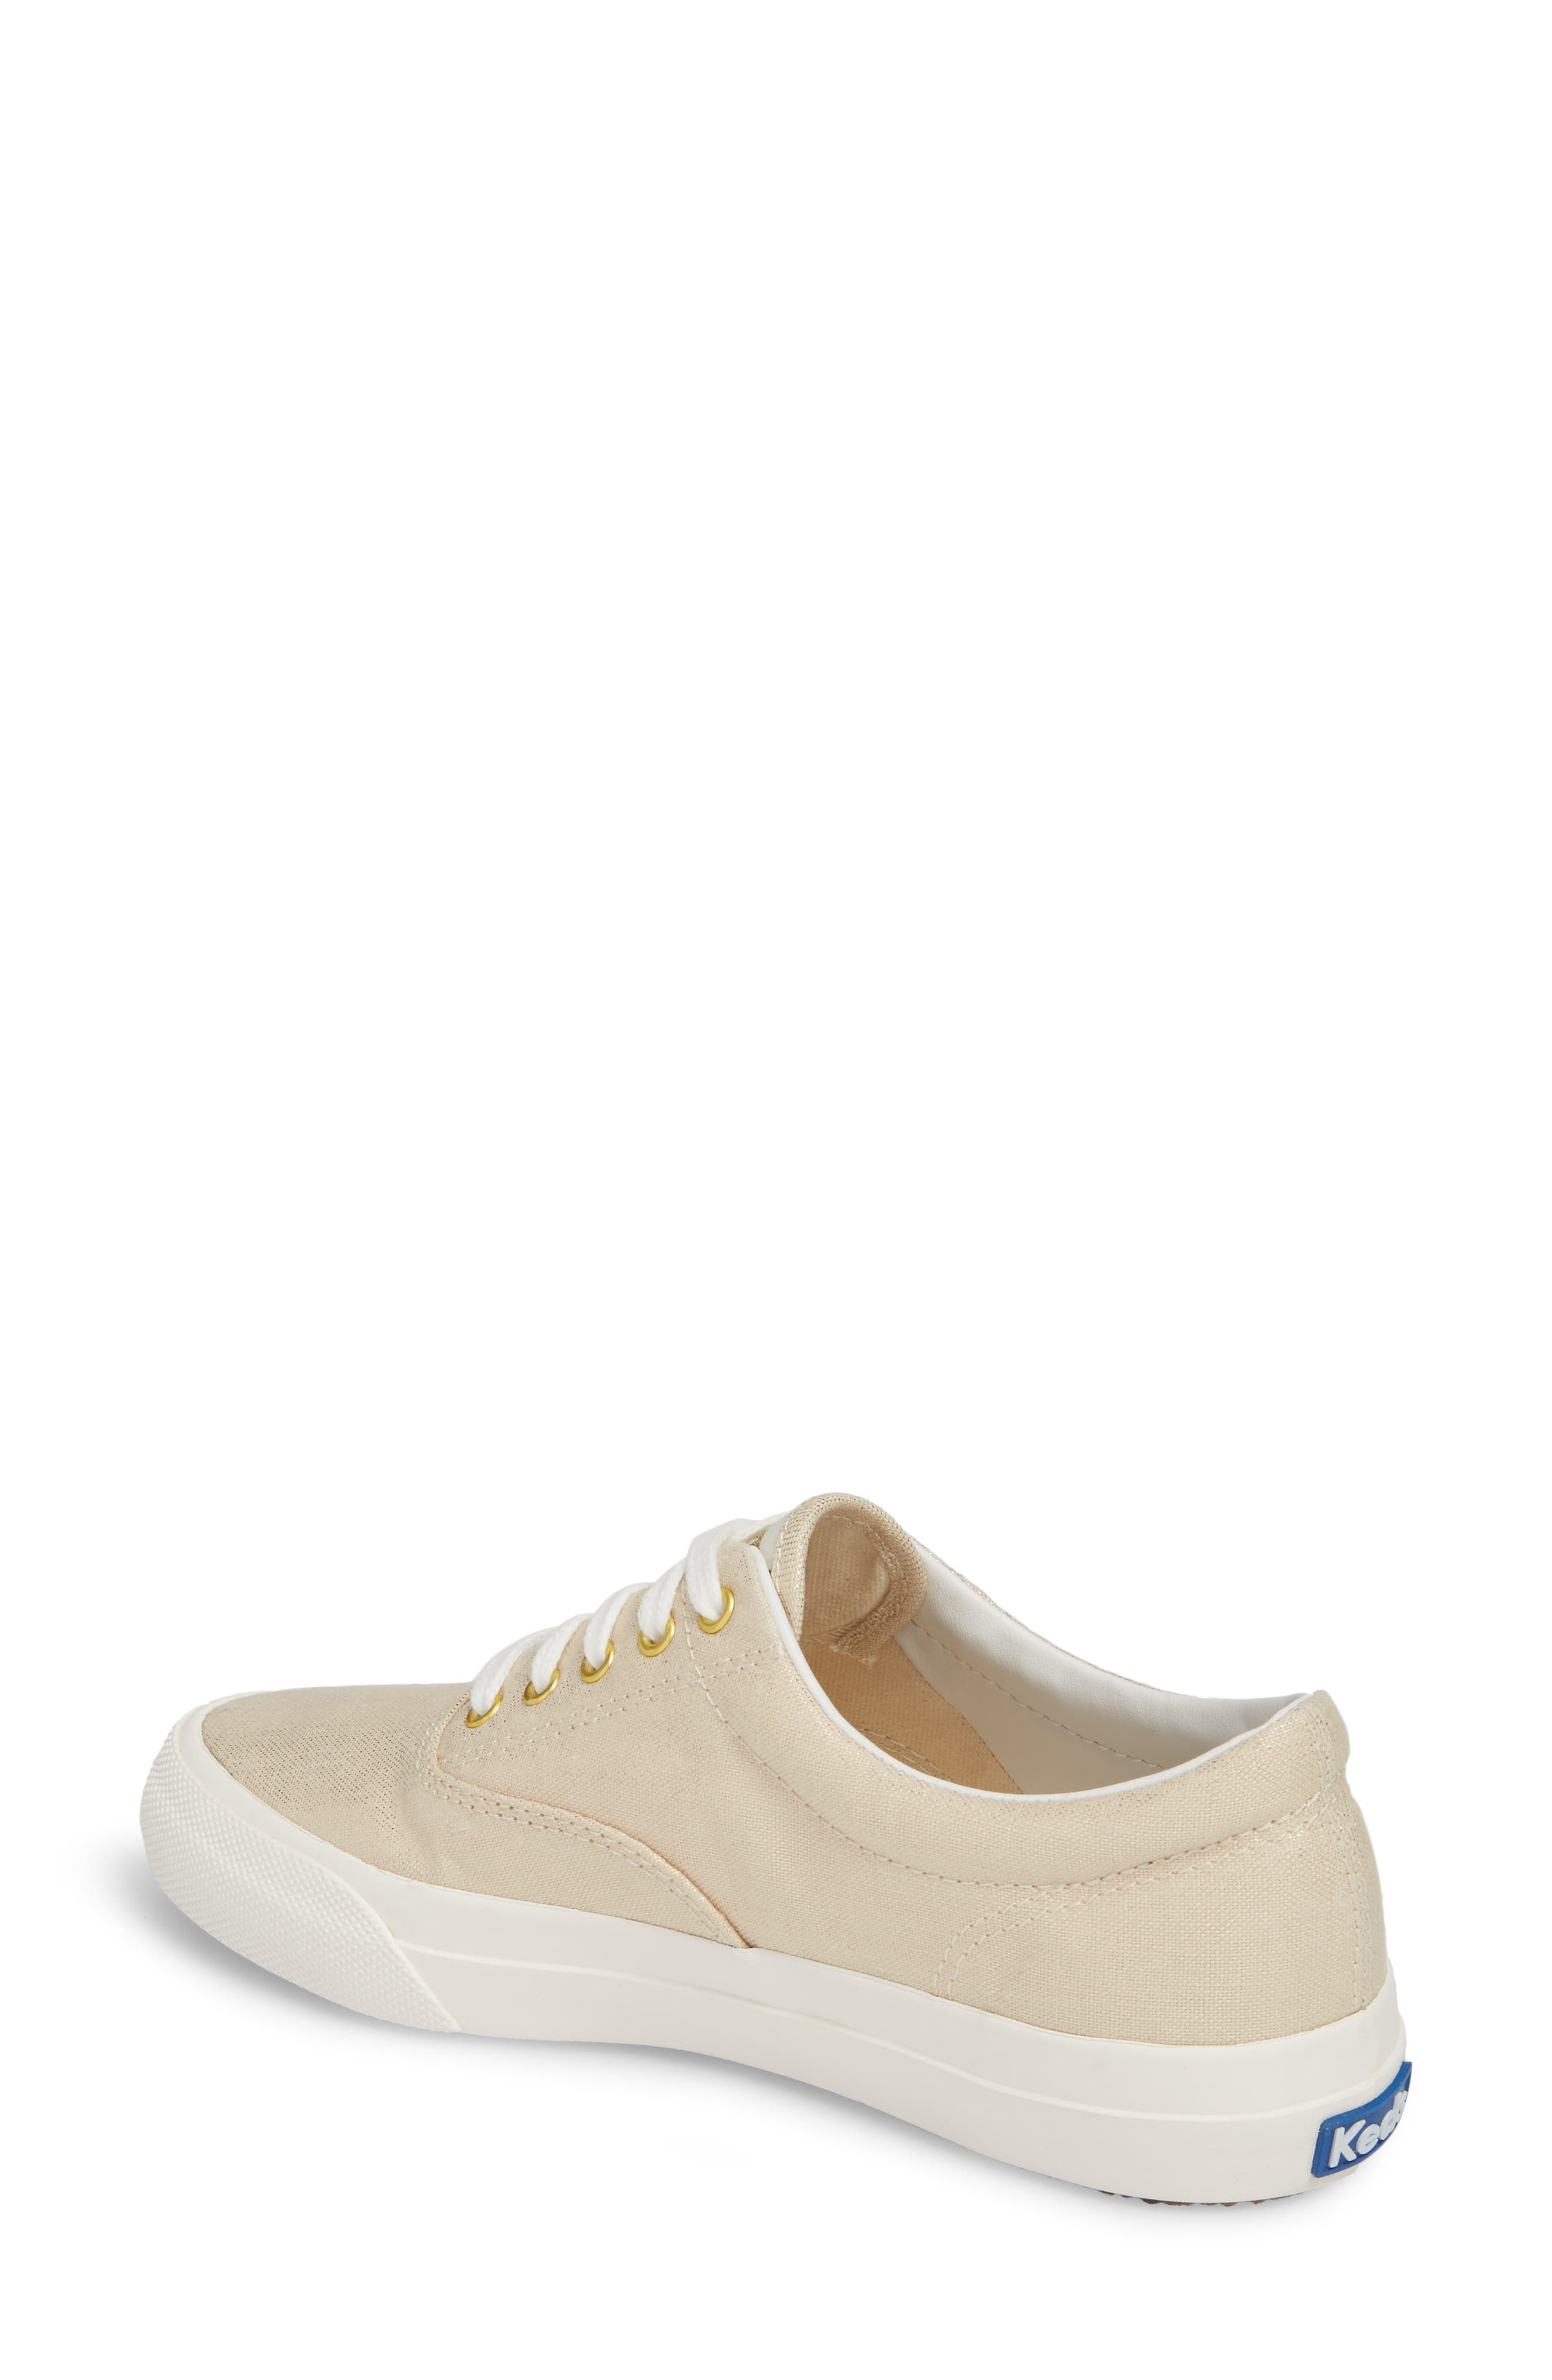 Anchor Metallic Linen Sneaker,                             Alternate thumbnail 2, color,                             710